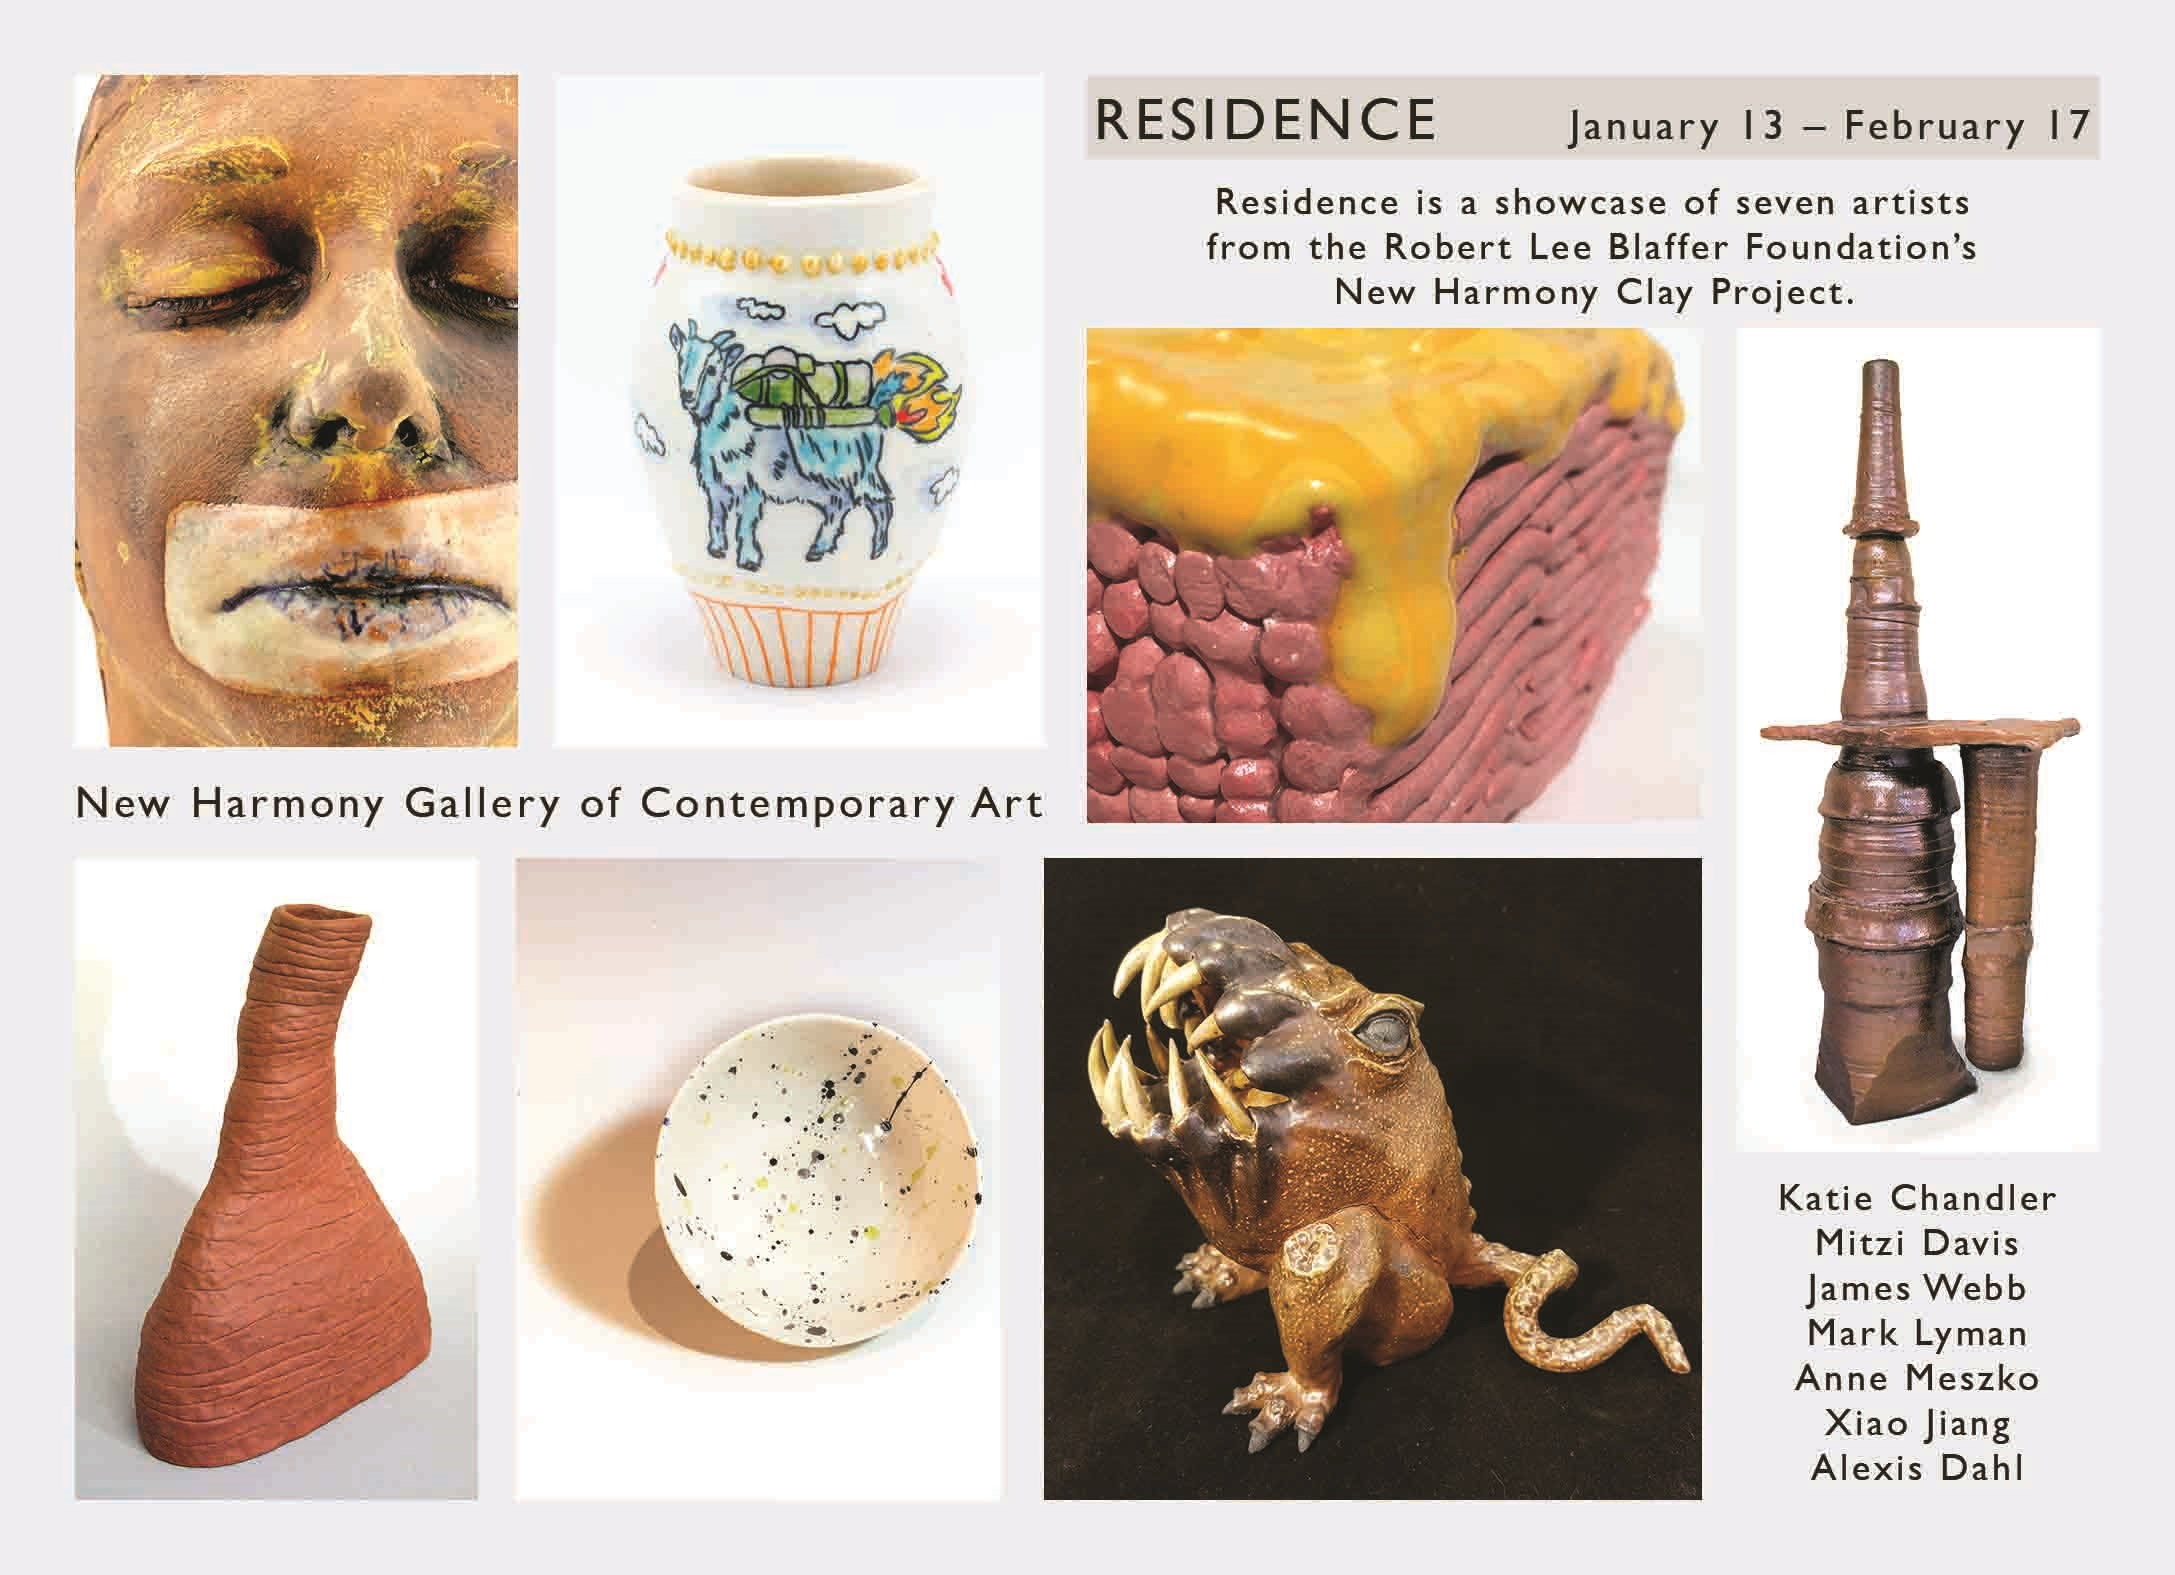 RESIDENCE January 13 - February 17  Residence is a showcase of seven artists from the Robert Lee Blaffer Foundation's New harmony Clay Project Katie Chandler Mitzi Davis James Webb Mark Lyman Anne Meszko Kiao Jiang Alexis Dahl